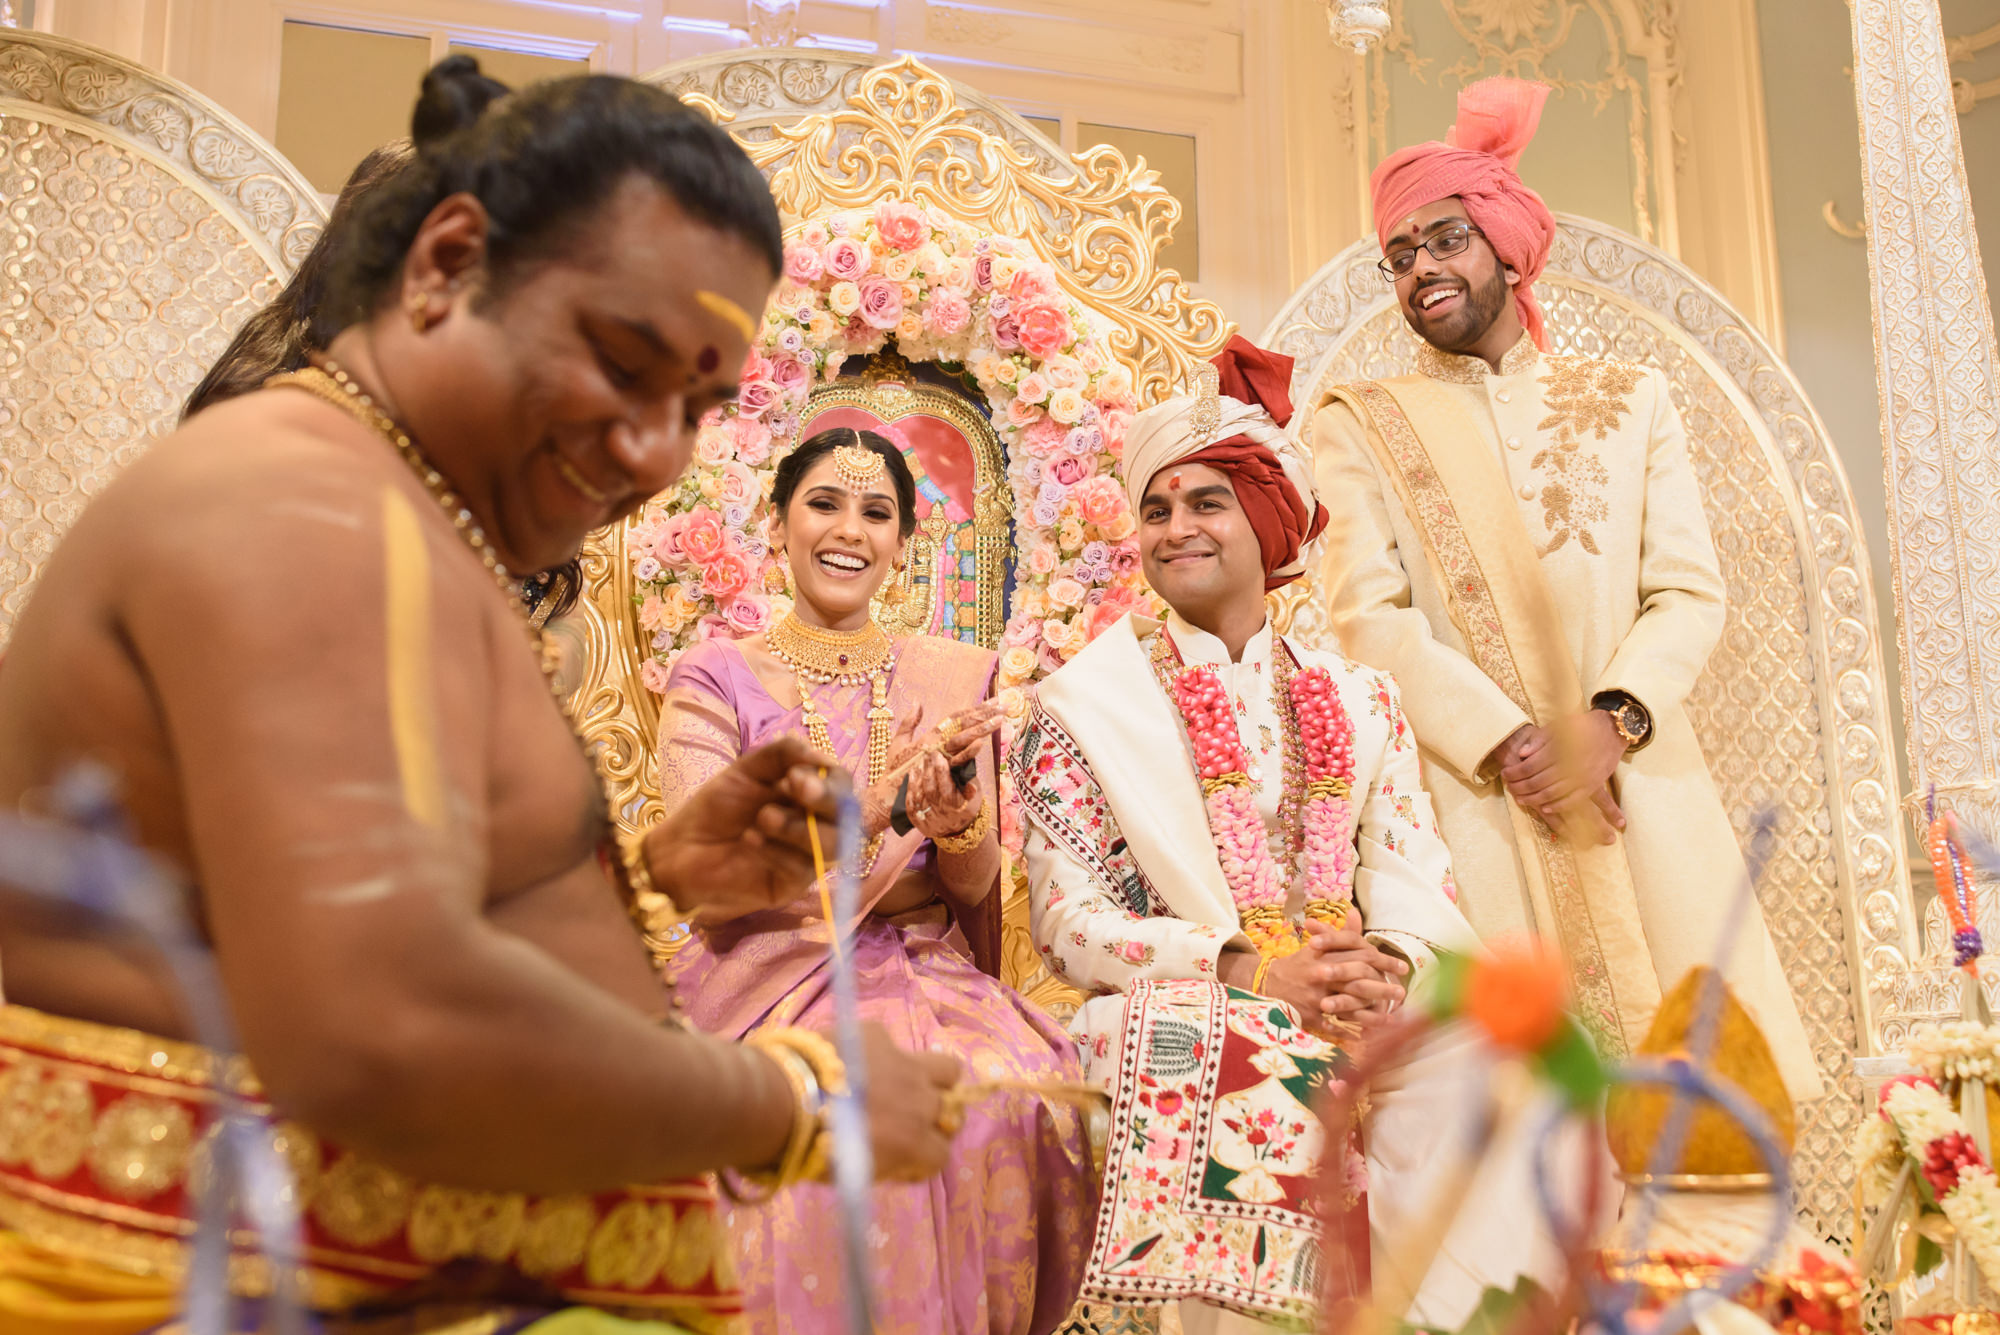 Tamil Gujrati hindu wedding photography photographer london the savoy -43.jpg